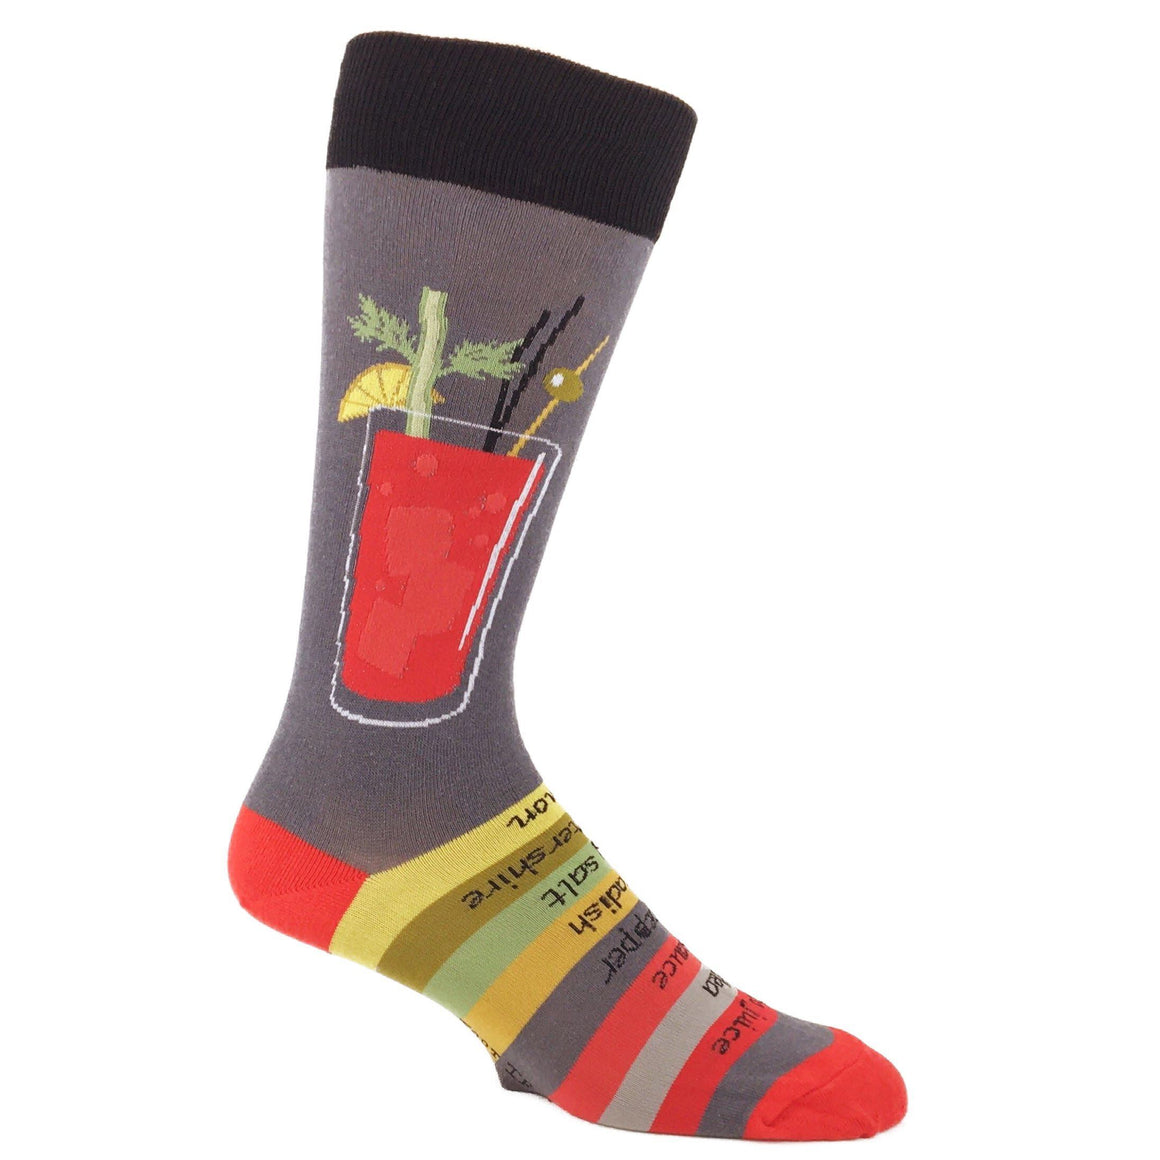 Bloody Mary Recipe Socks by Foot Traffic - The Sock Spot